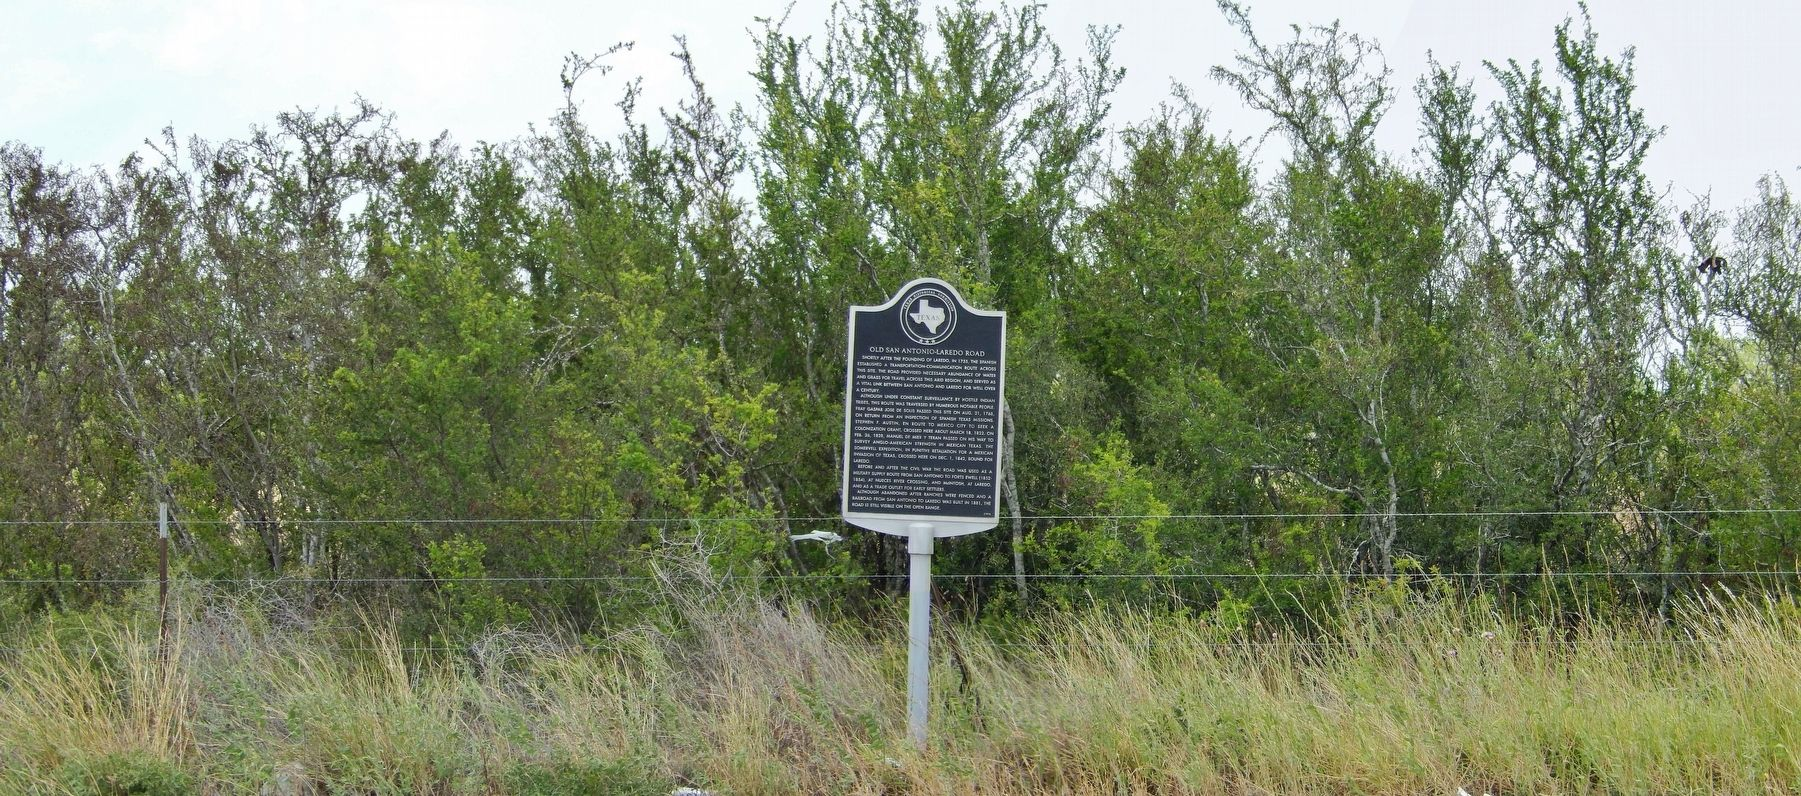 Old San Antonio-Laredo Road Marker (<i>wide view</i>) image. Click for full size.